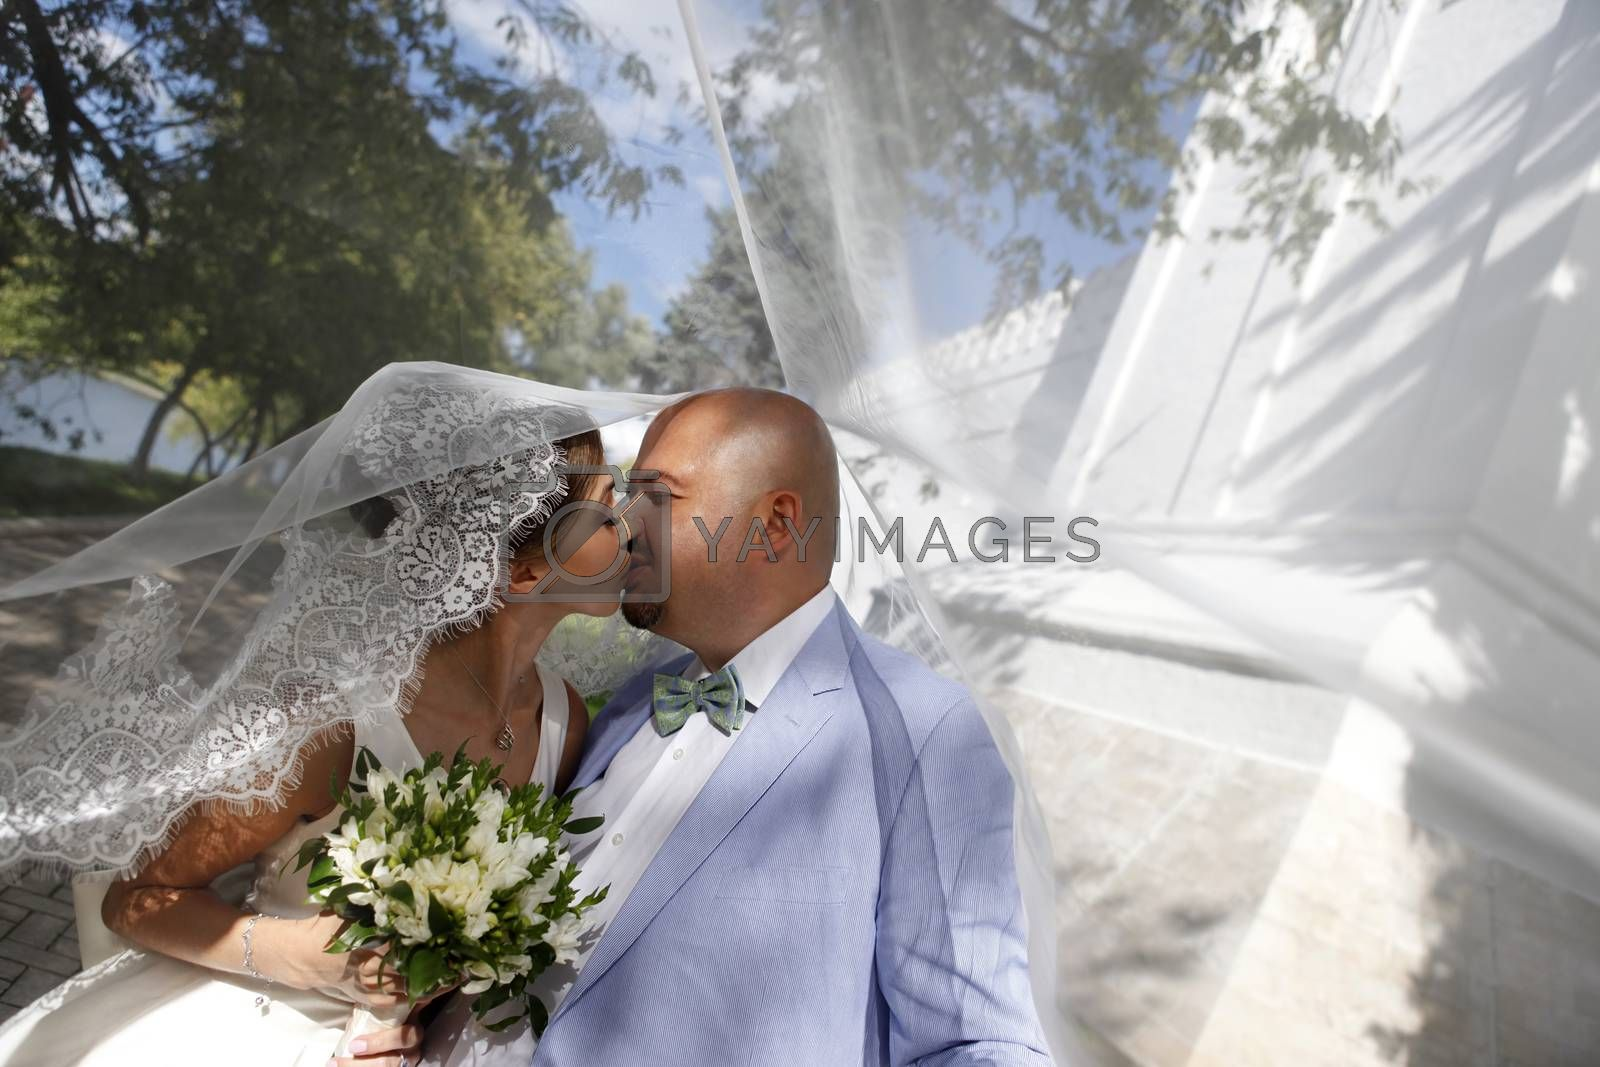 The groom and the bride kiss having closed by a veil